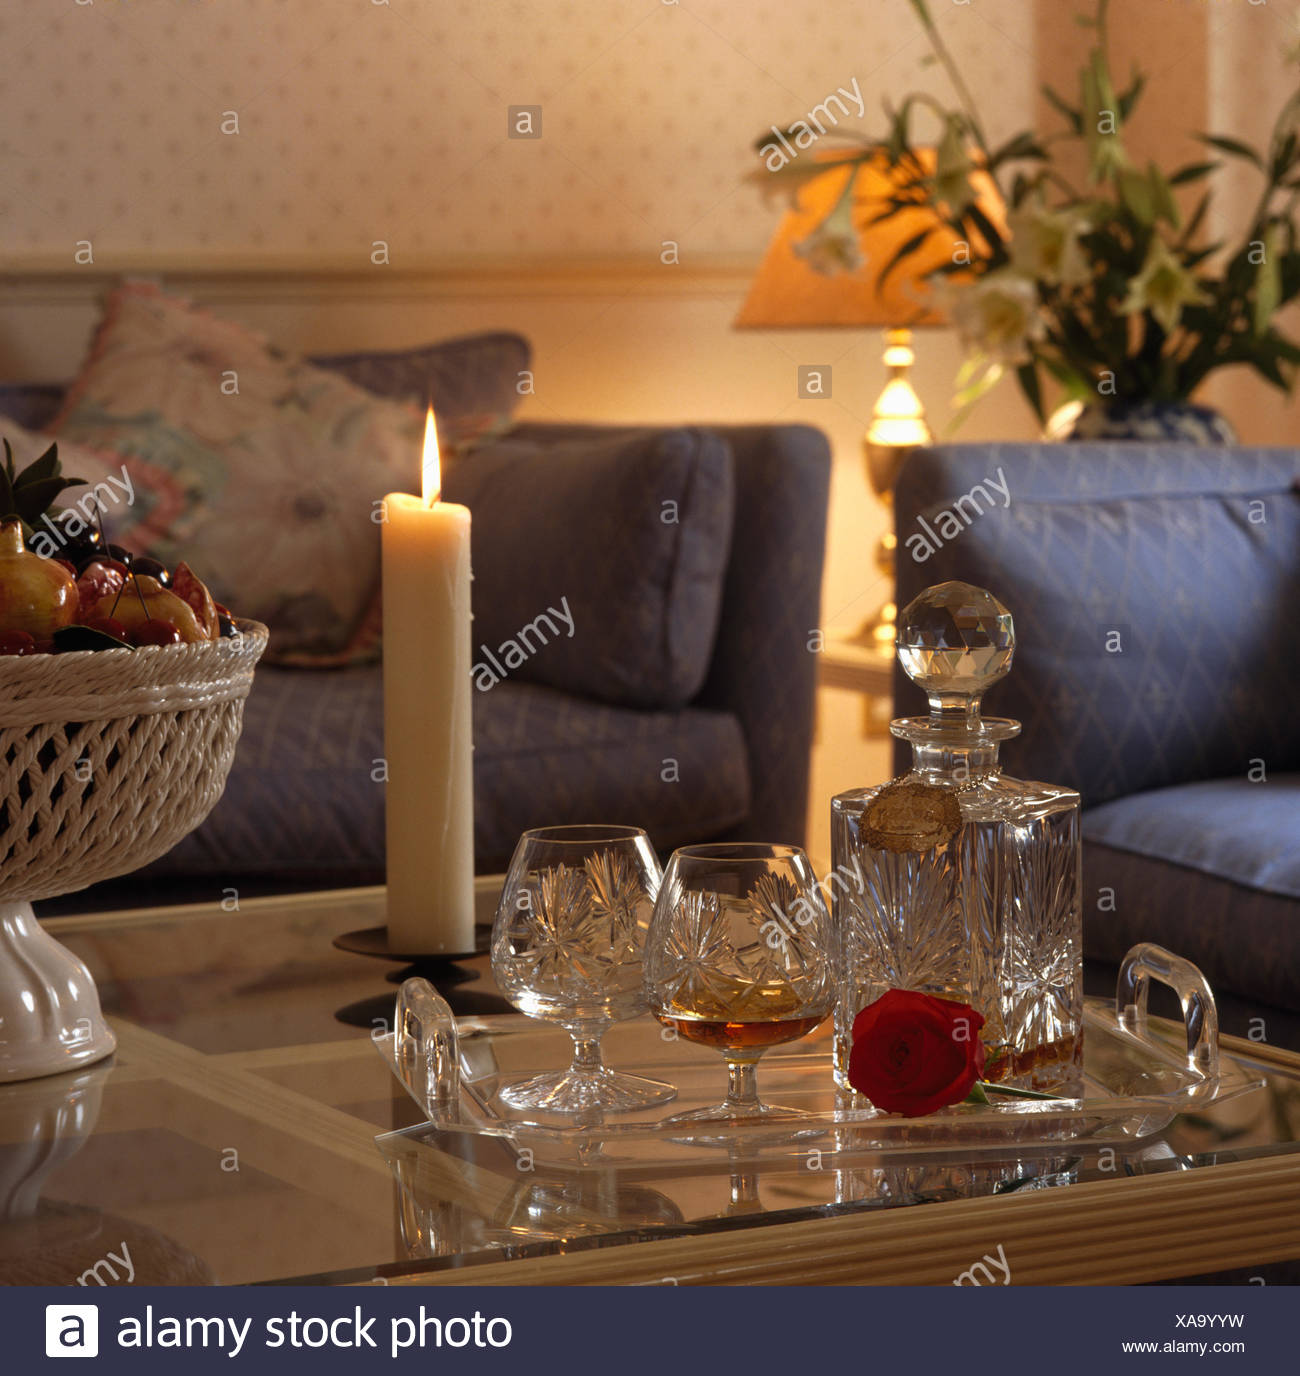 Decanter And Glasses On Table With A Lighted Candle In Eighties Living Room